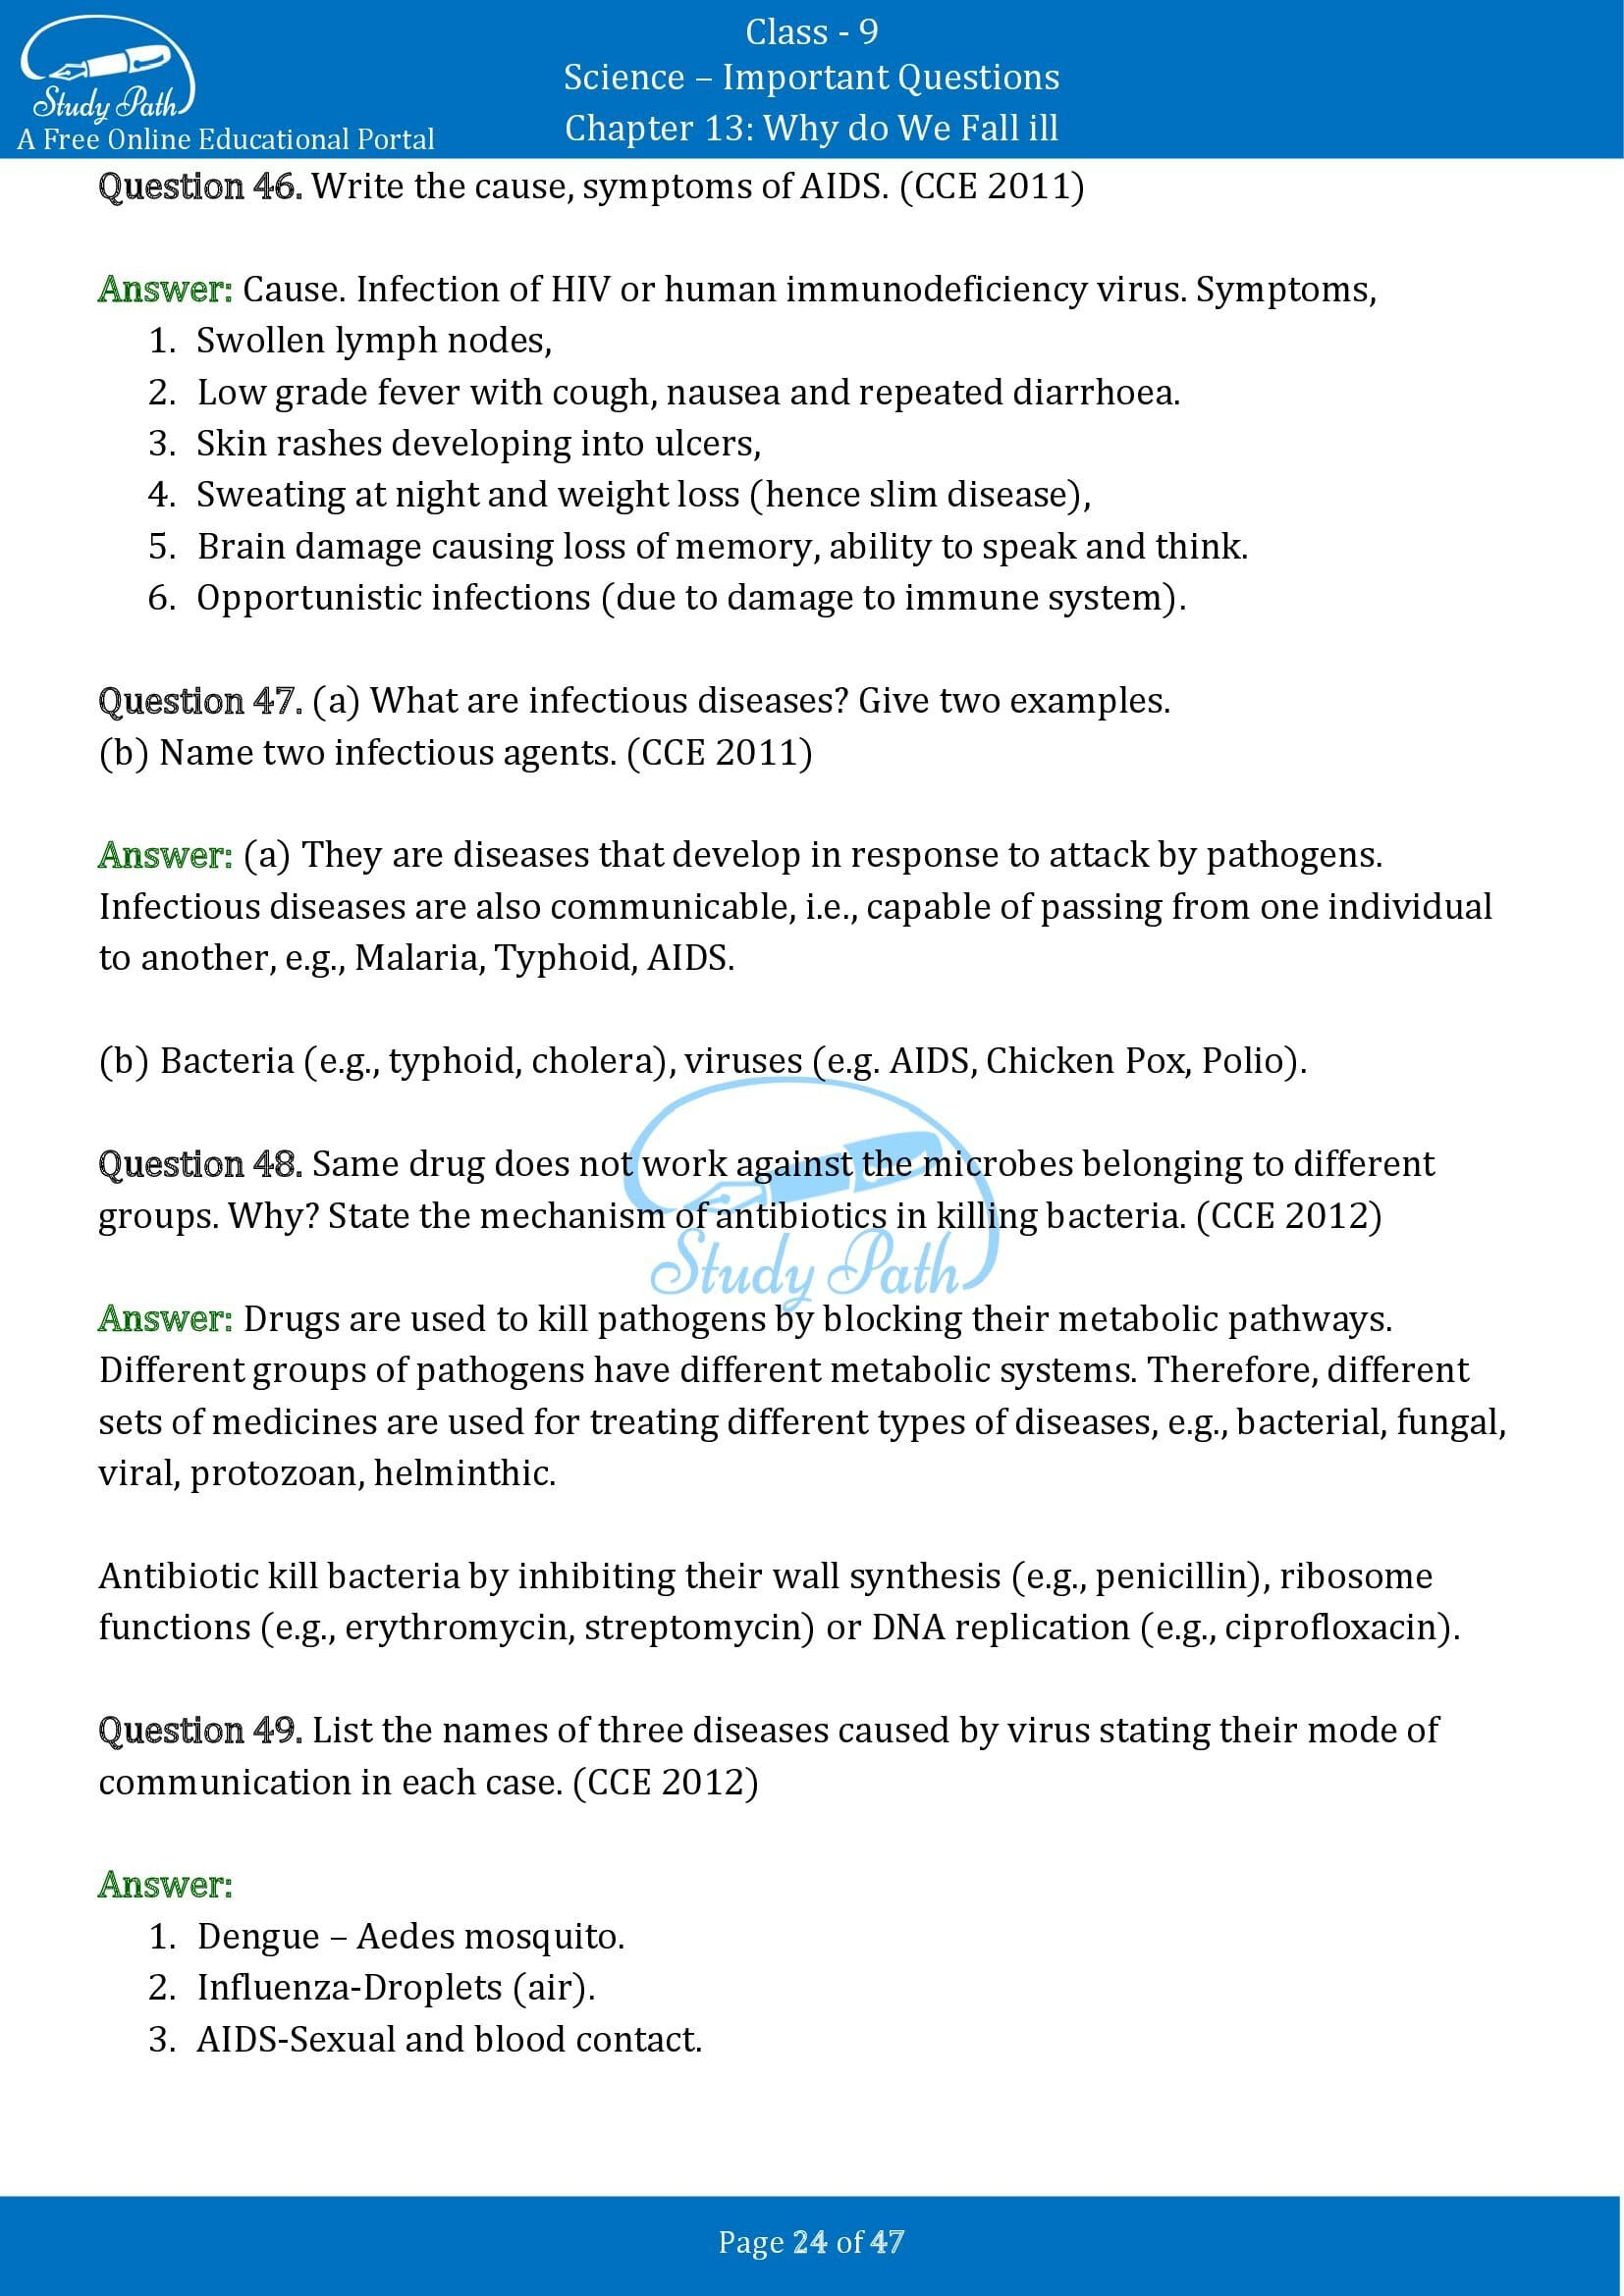 Important Questions for Class 9 Science Chapter 13 Why do We Fall ill 00024